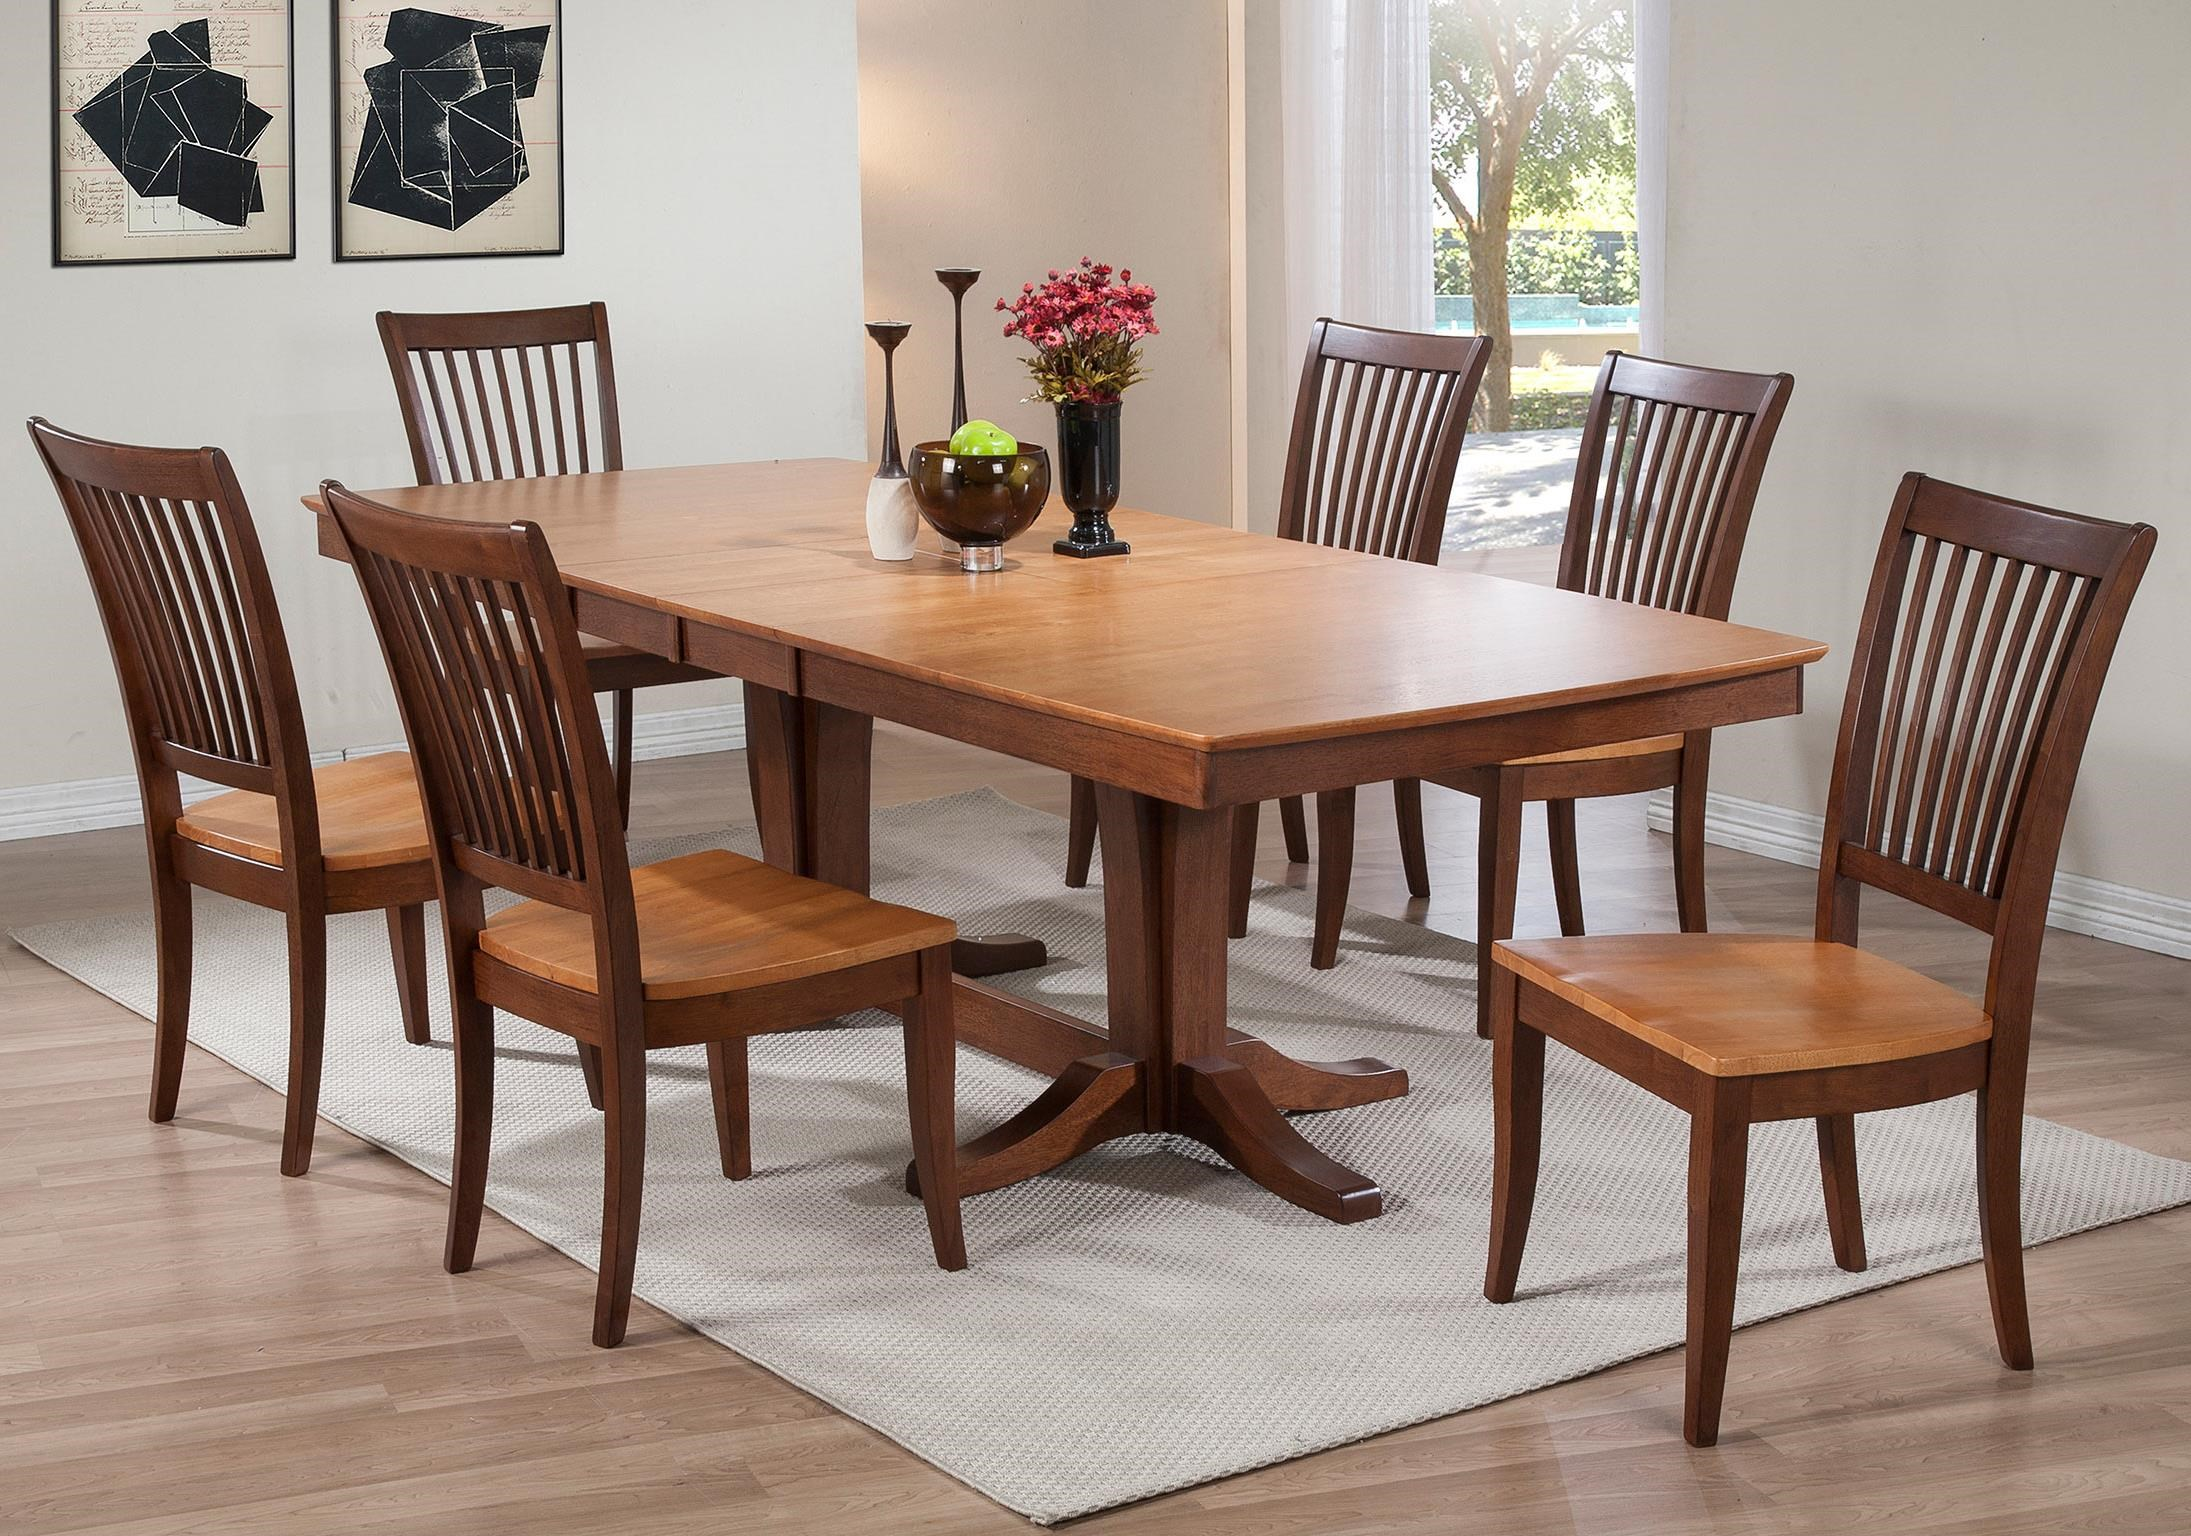 Santa Barbara 7 Piece Dining Set with Slat Back Chairs & Santa Barbara 7 Piece Dining Set with Slat Back Chairs | Rotmans ...